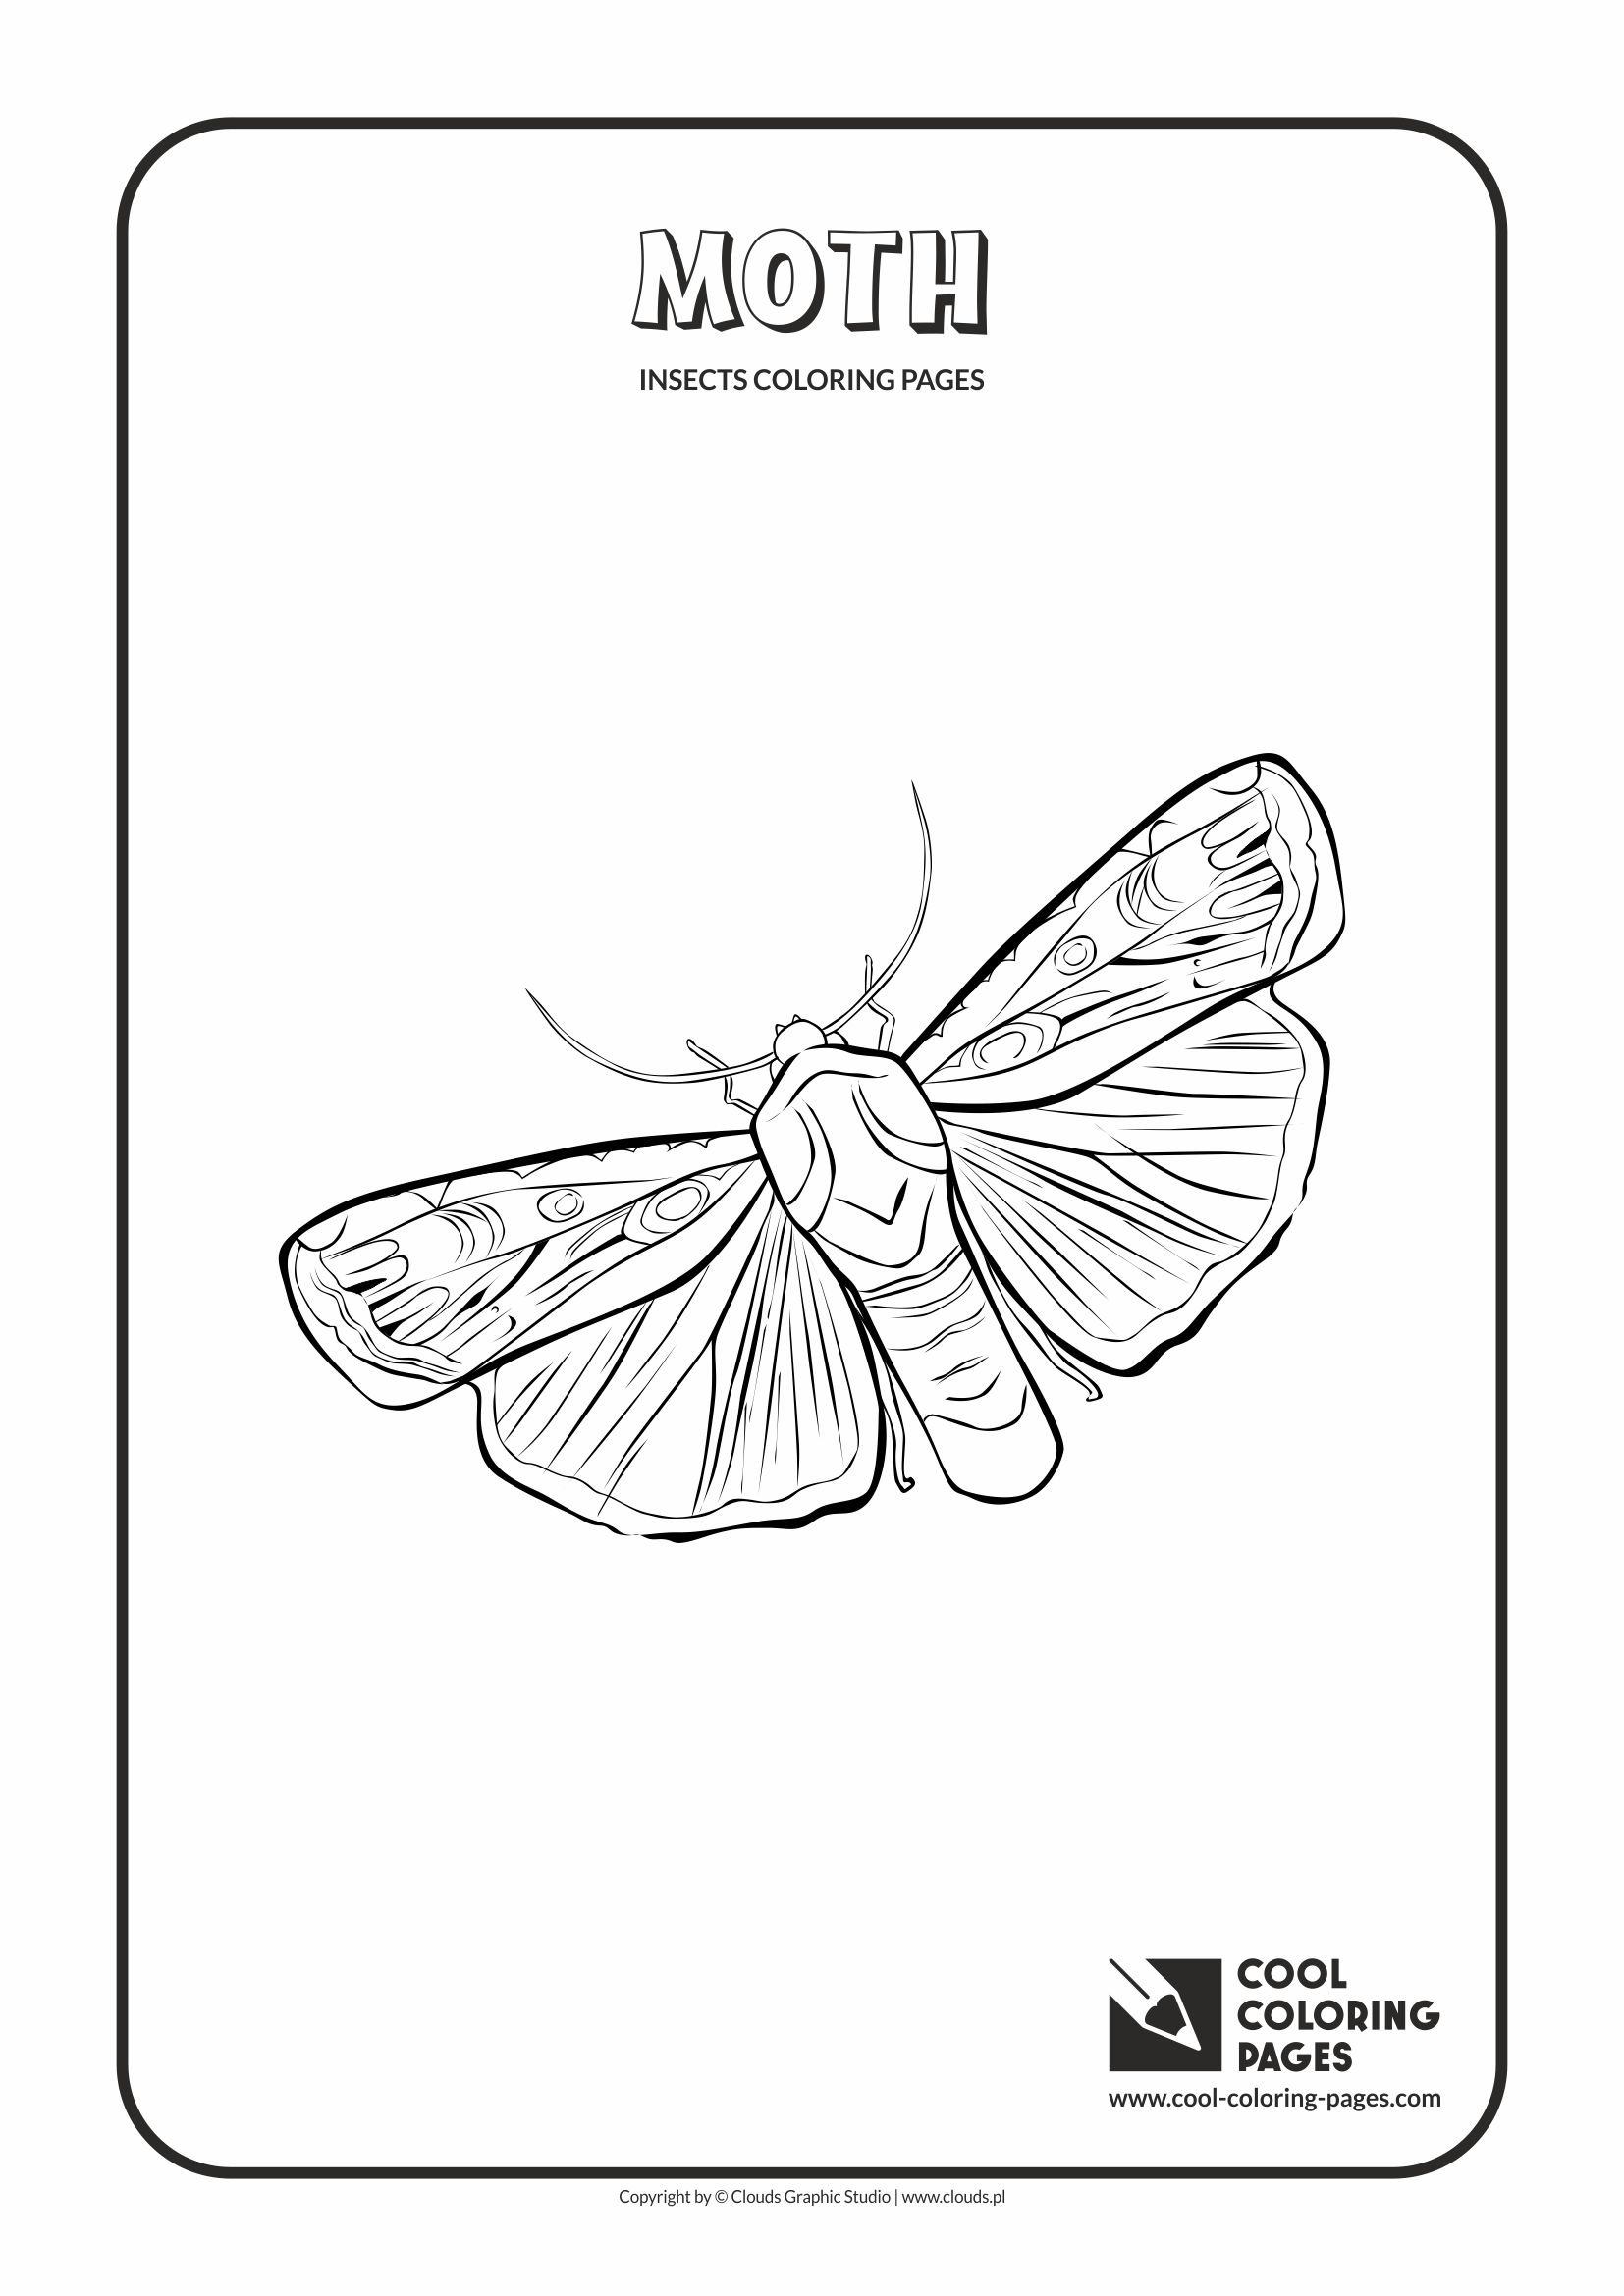 1654x2339 Cool Coloring Pages Moth Coloring Page